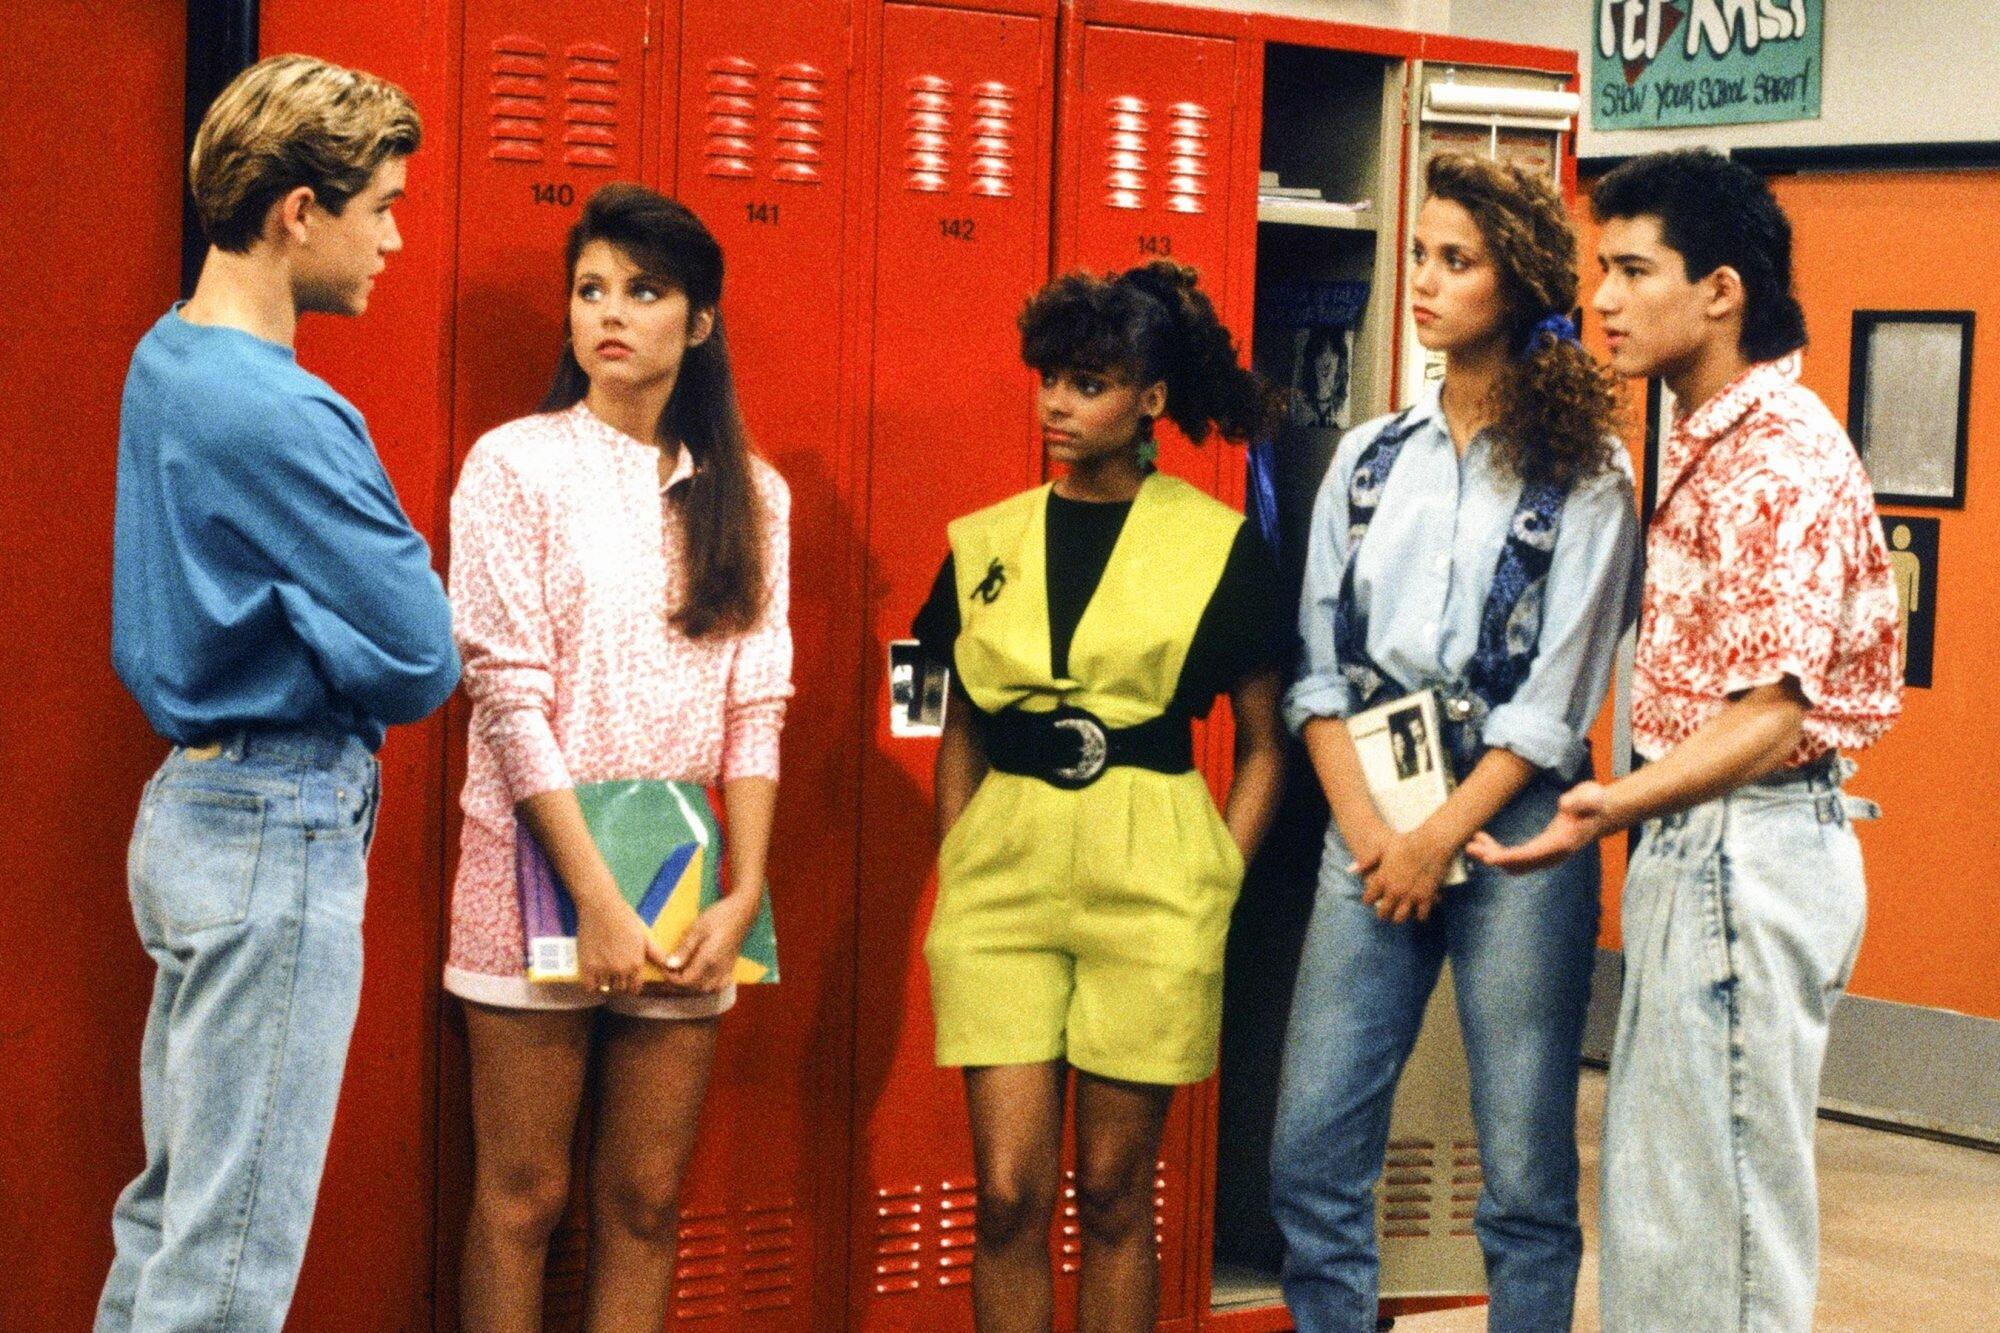 Jessie Spano Saved By The Bell 2012